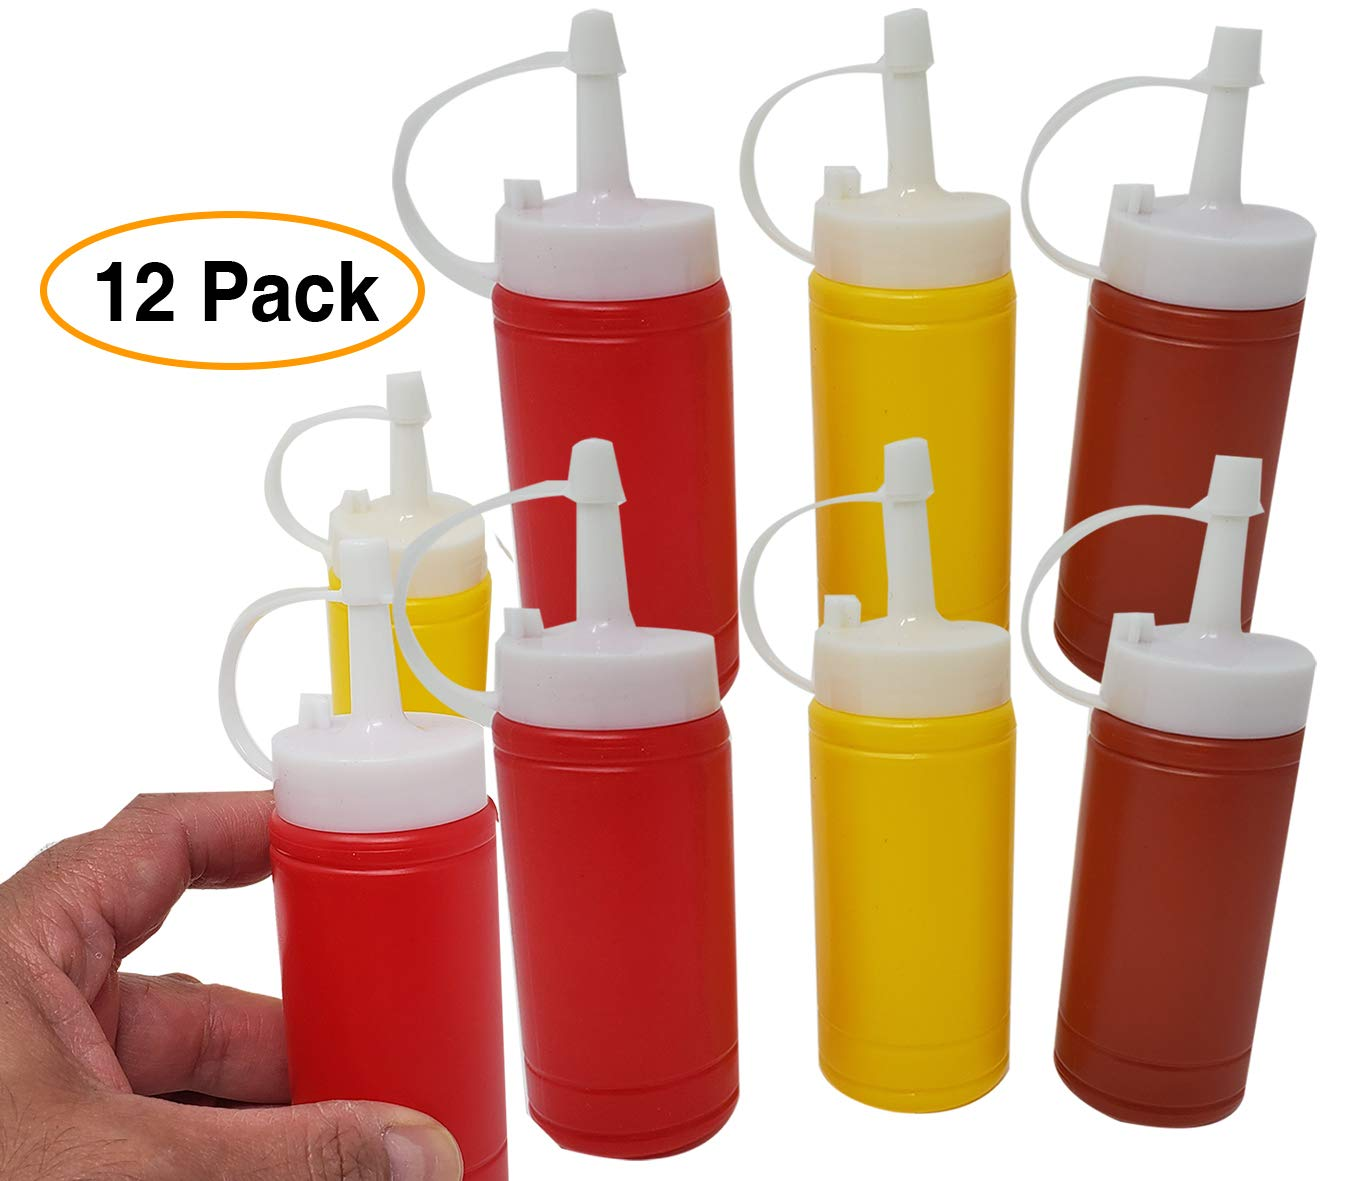 Mini Condiment Dispenser Set Ketchup, Mustard & BBQ sauce (12 bottles) squeeze bottles 6 Oz. by aaco (Image #1)